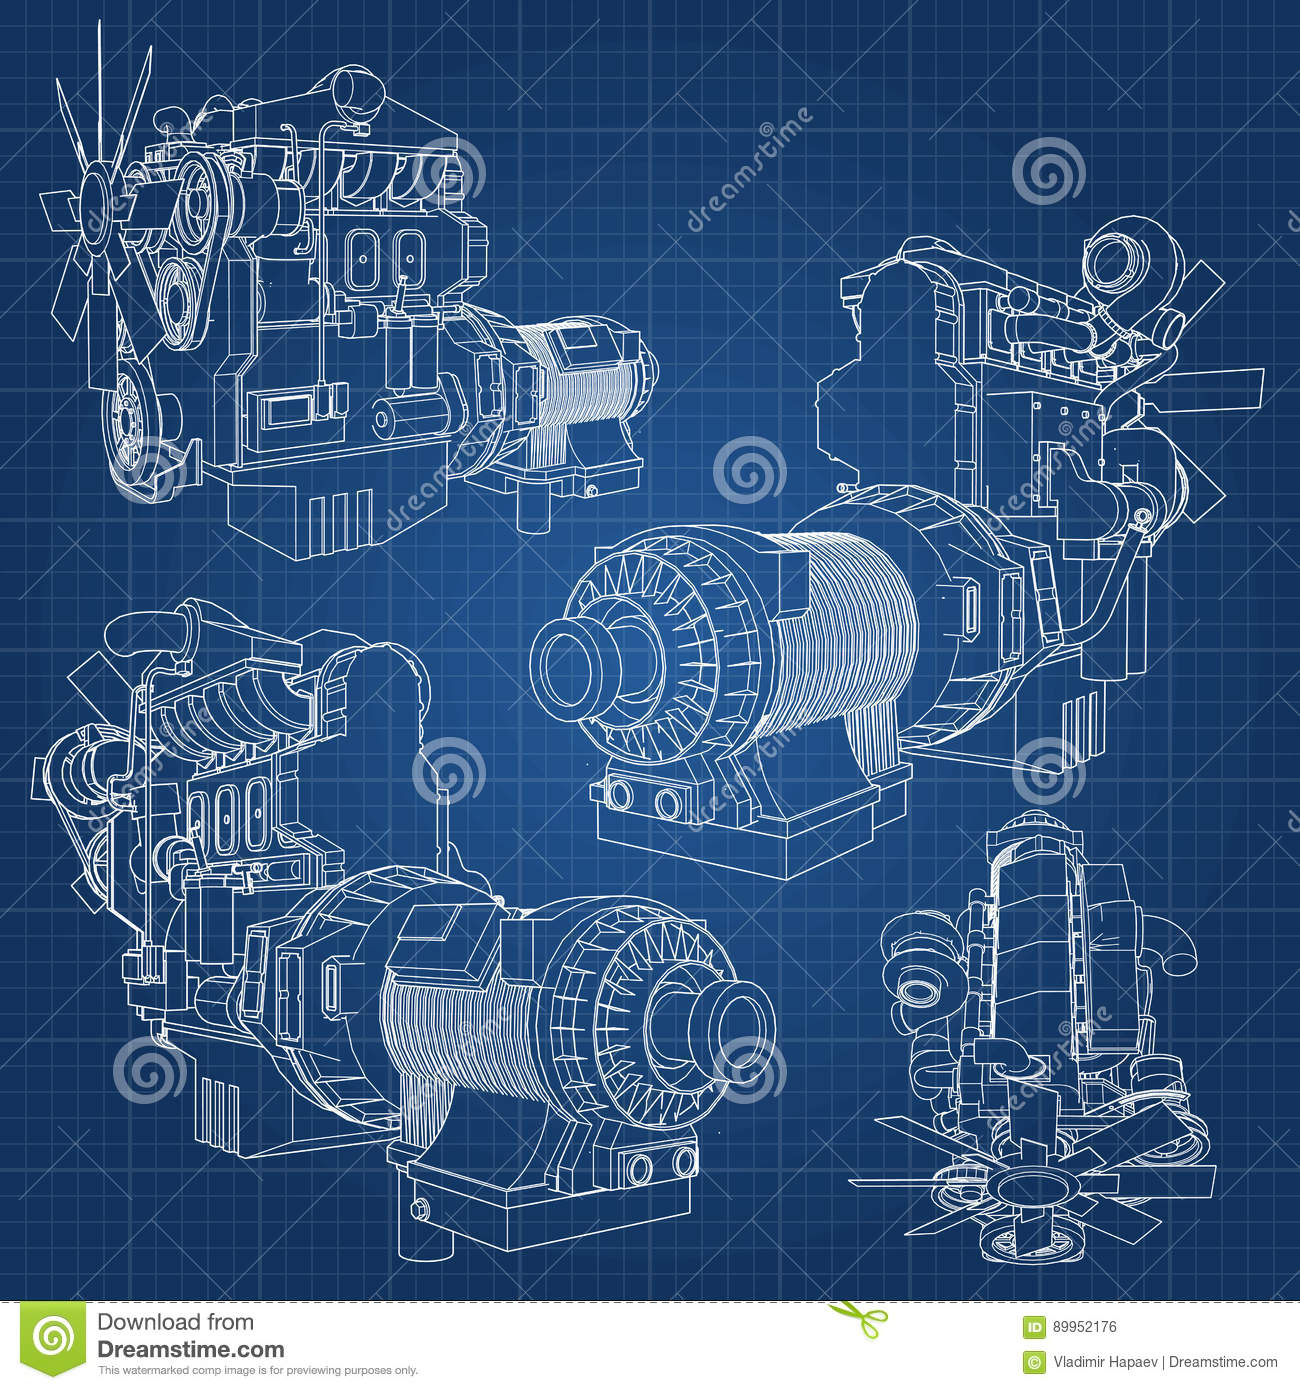 A big diesel engine with the truck depicted in the contour lines on a big diesel engine with the truck depicted in the contour lines on graph paper the contours of the black line on the blue backgr industrial gear malvernweather Images